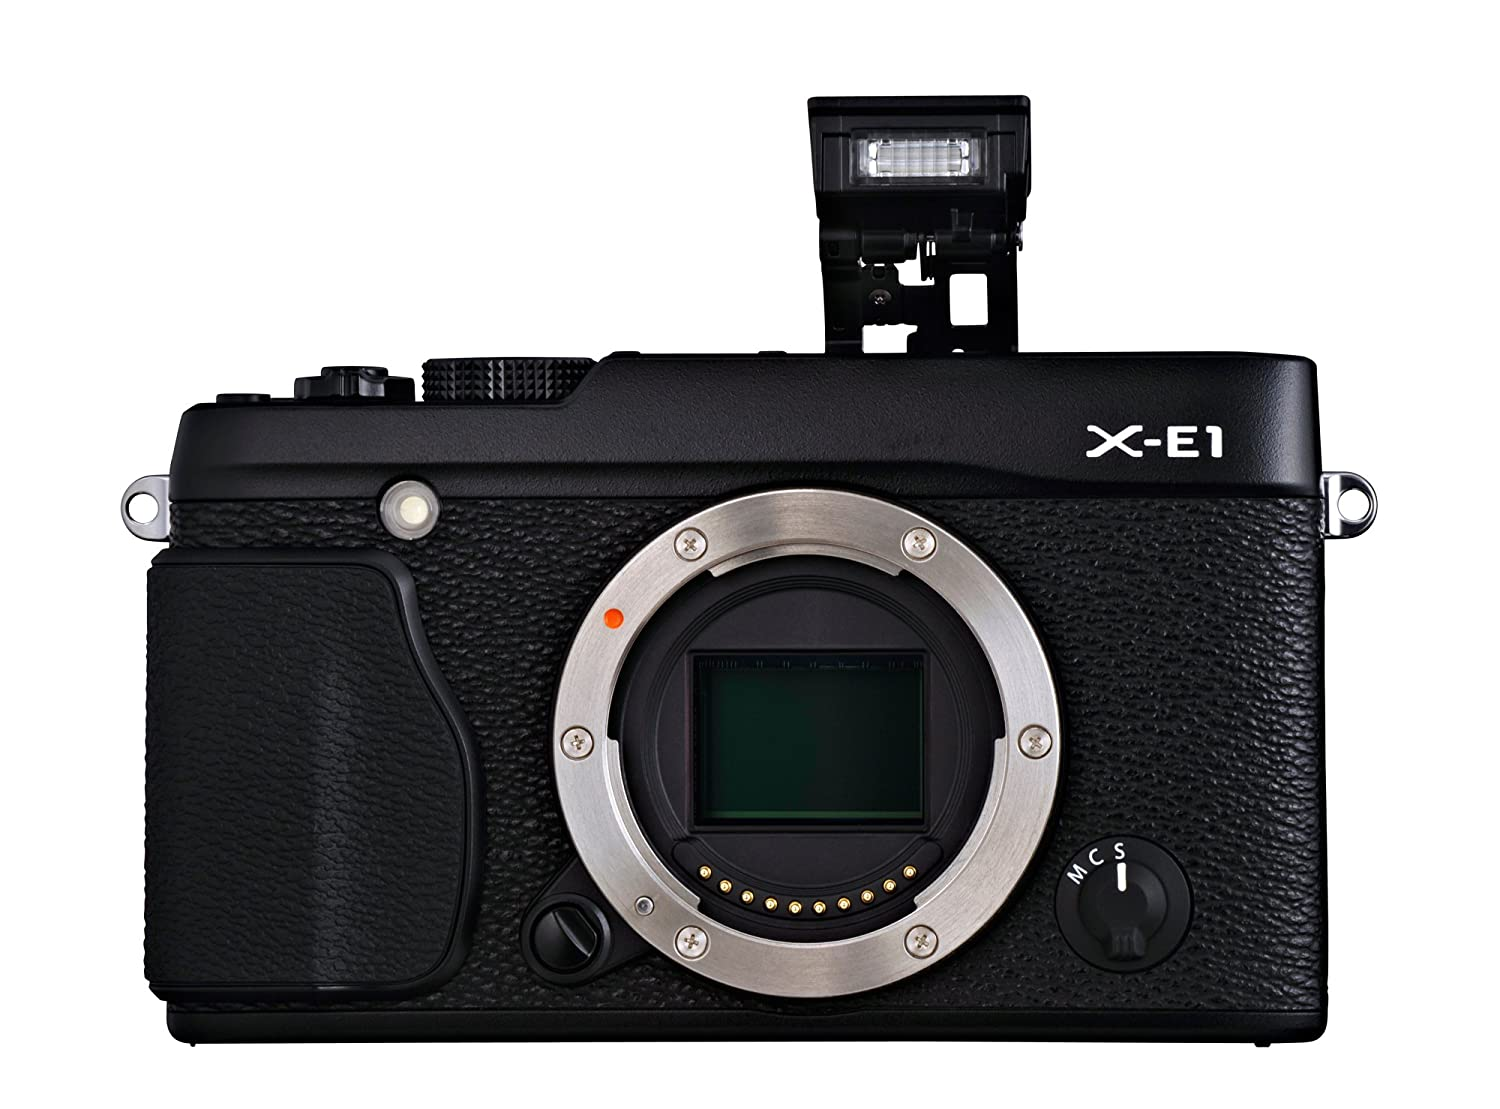 Amazon.com : Fujifilm X-E1 16.3 MP Compact System Digital Camera with  2.8-Inch LCD - Body Only (Black) : Camera & Photo